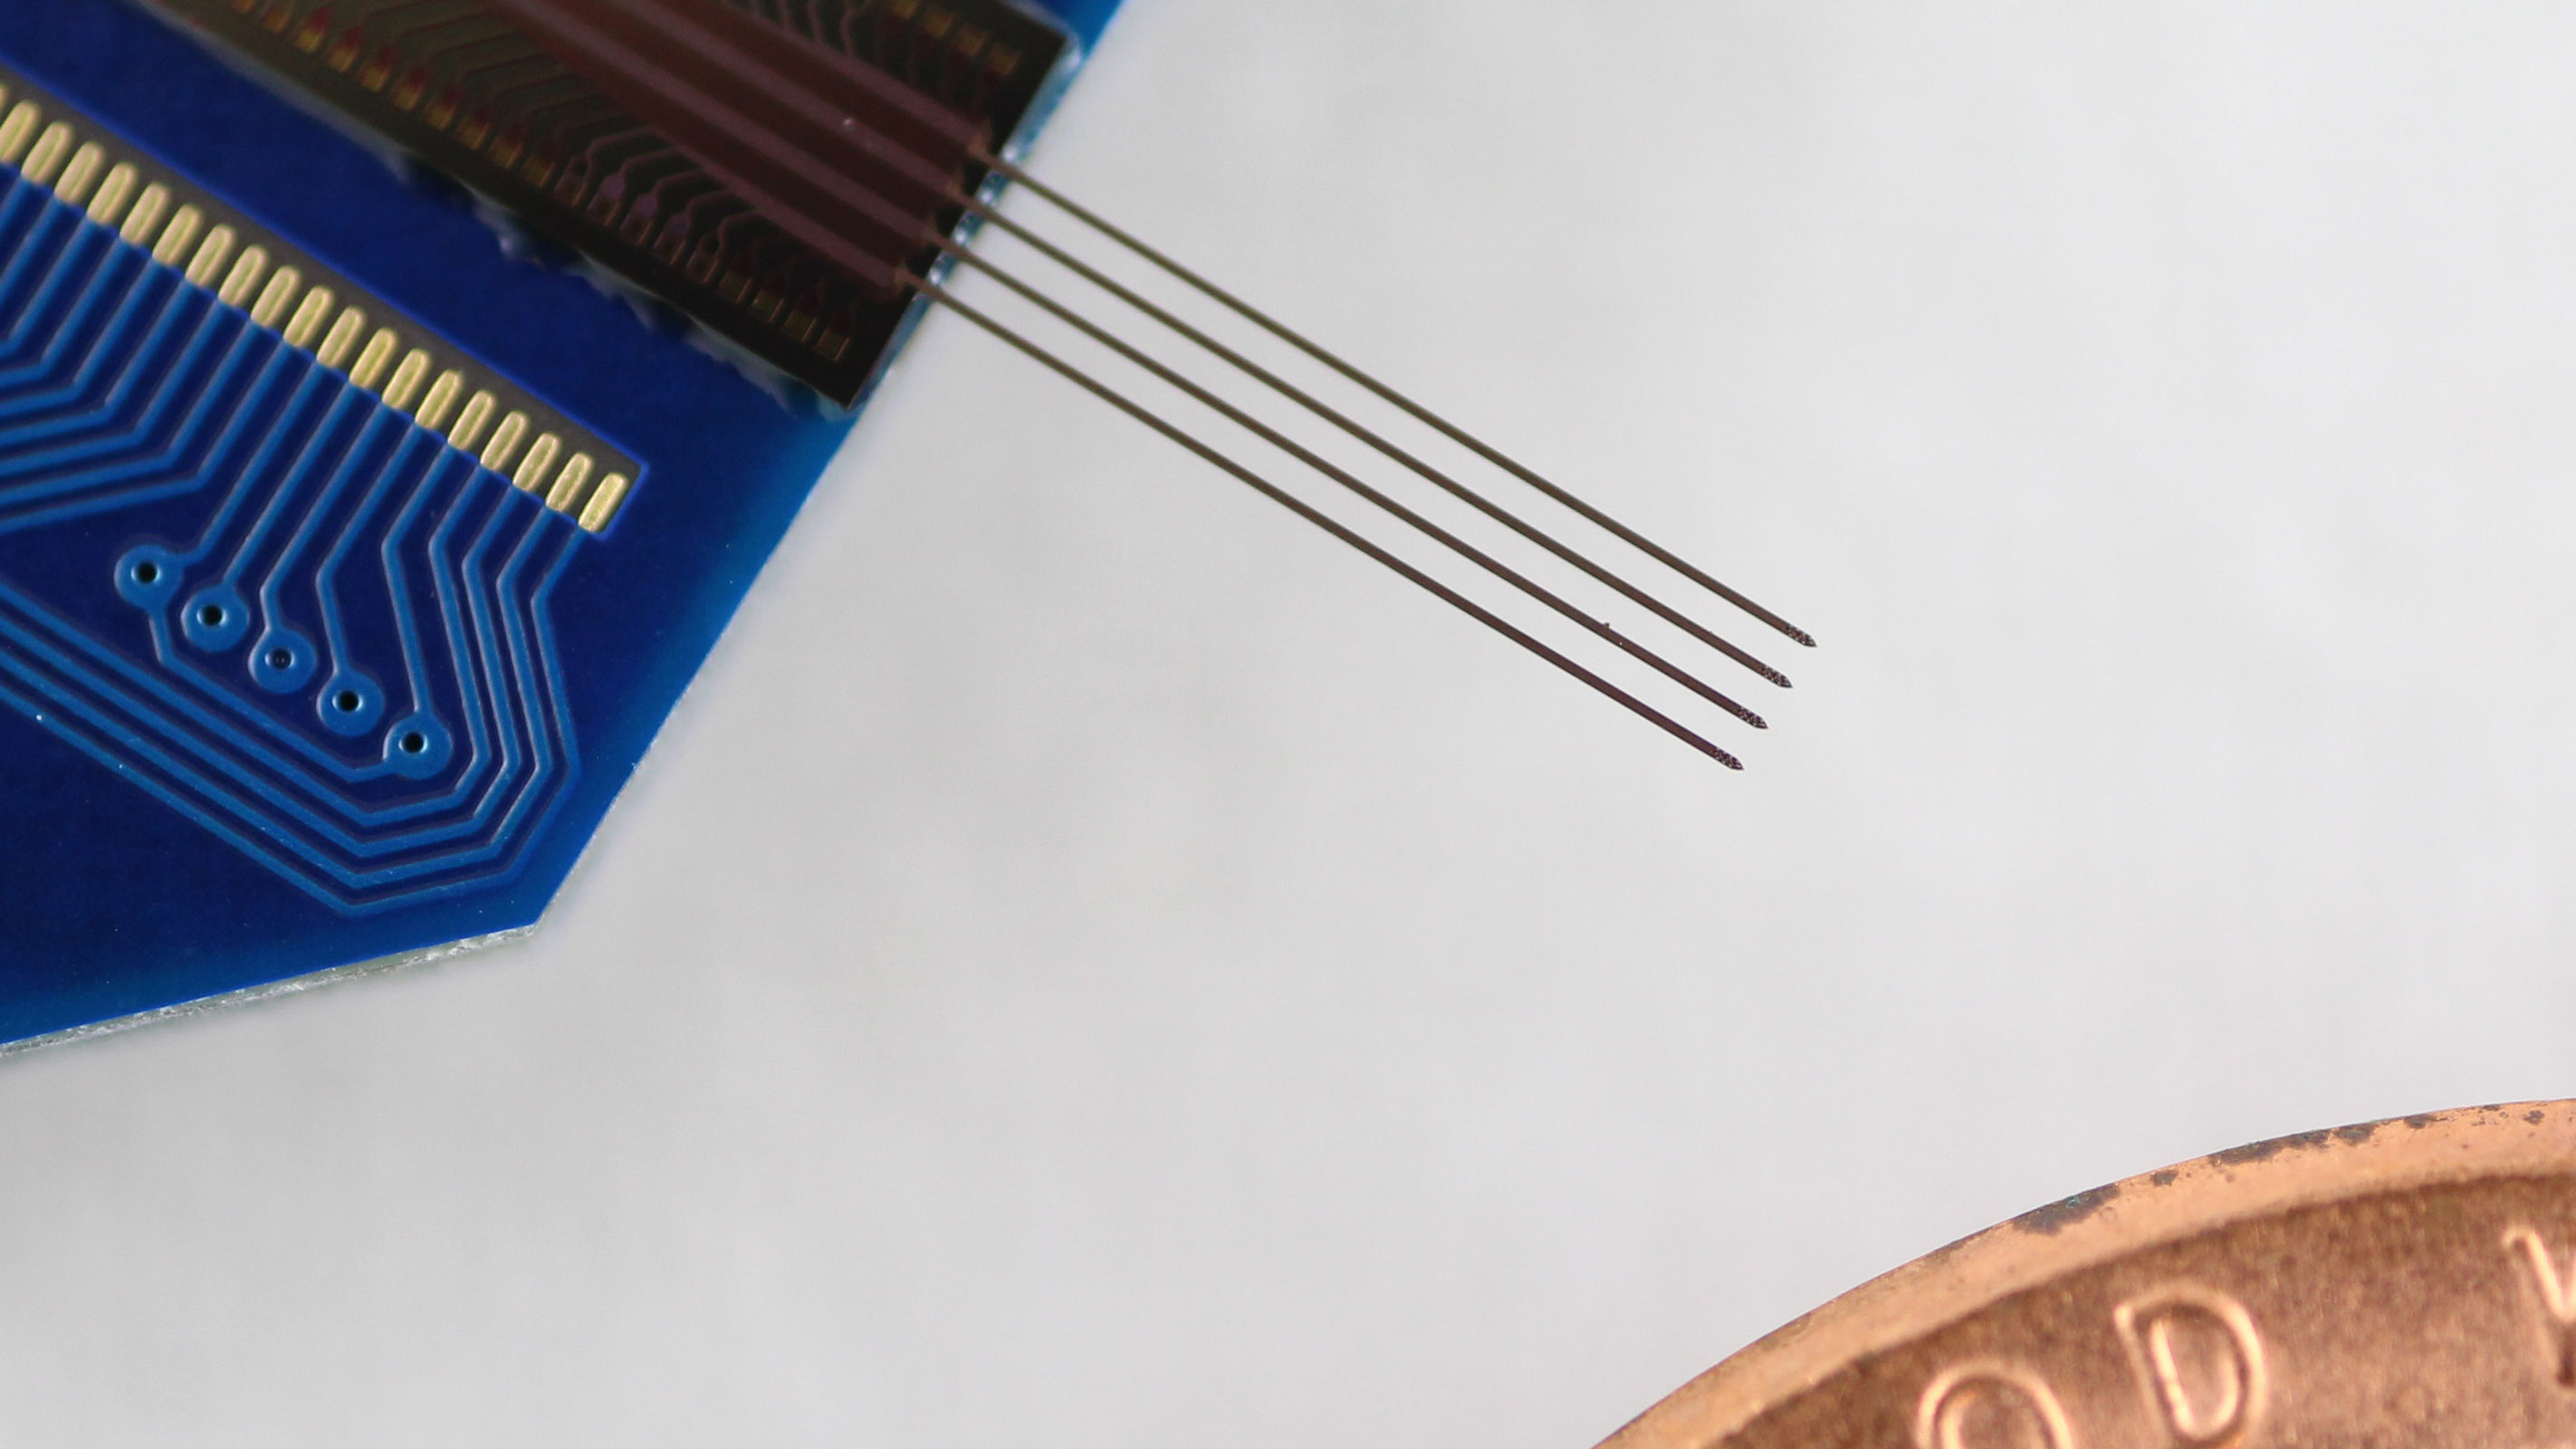 A four-shank probe, with each prong just 0.07 millimeters across, next to a penny for scale.